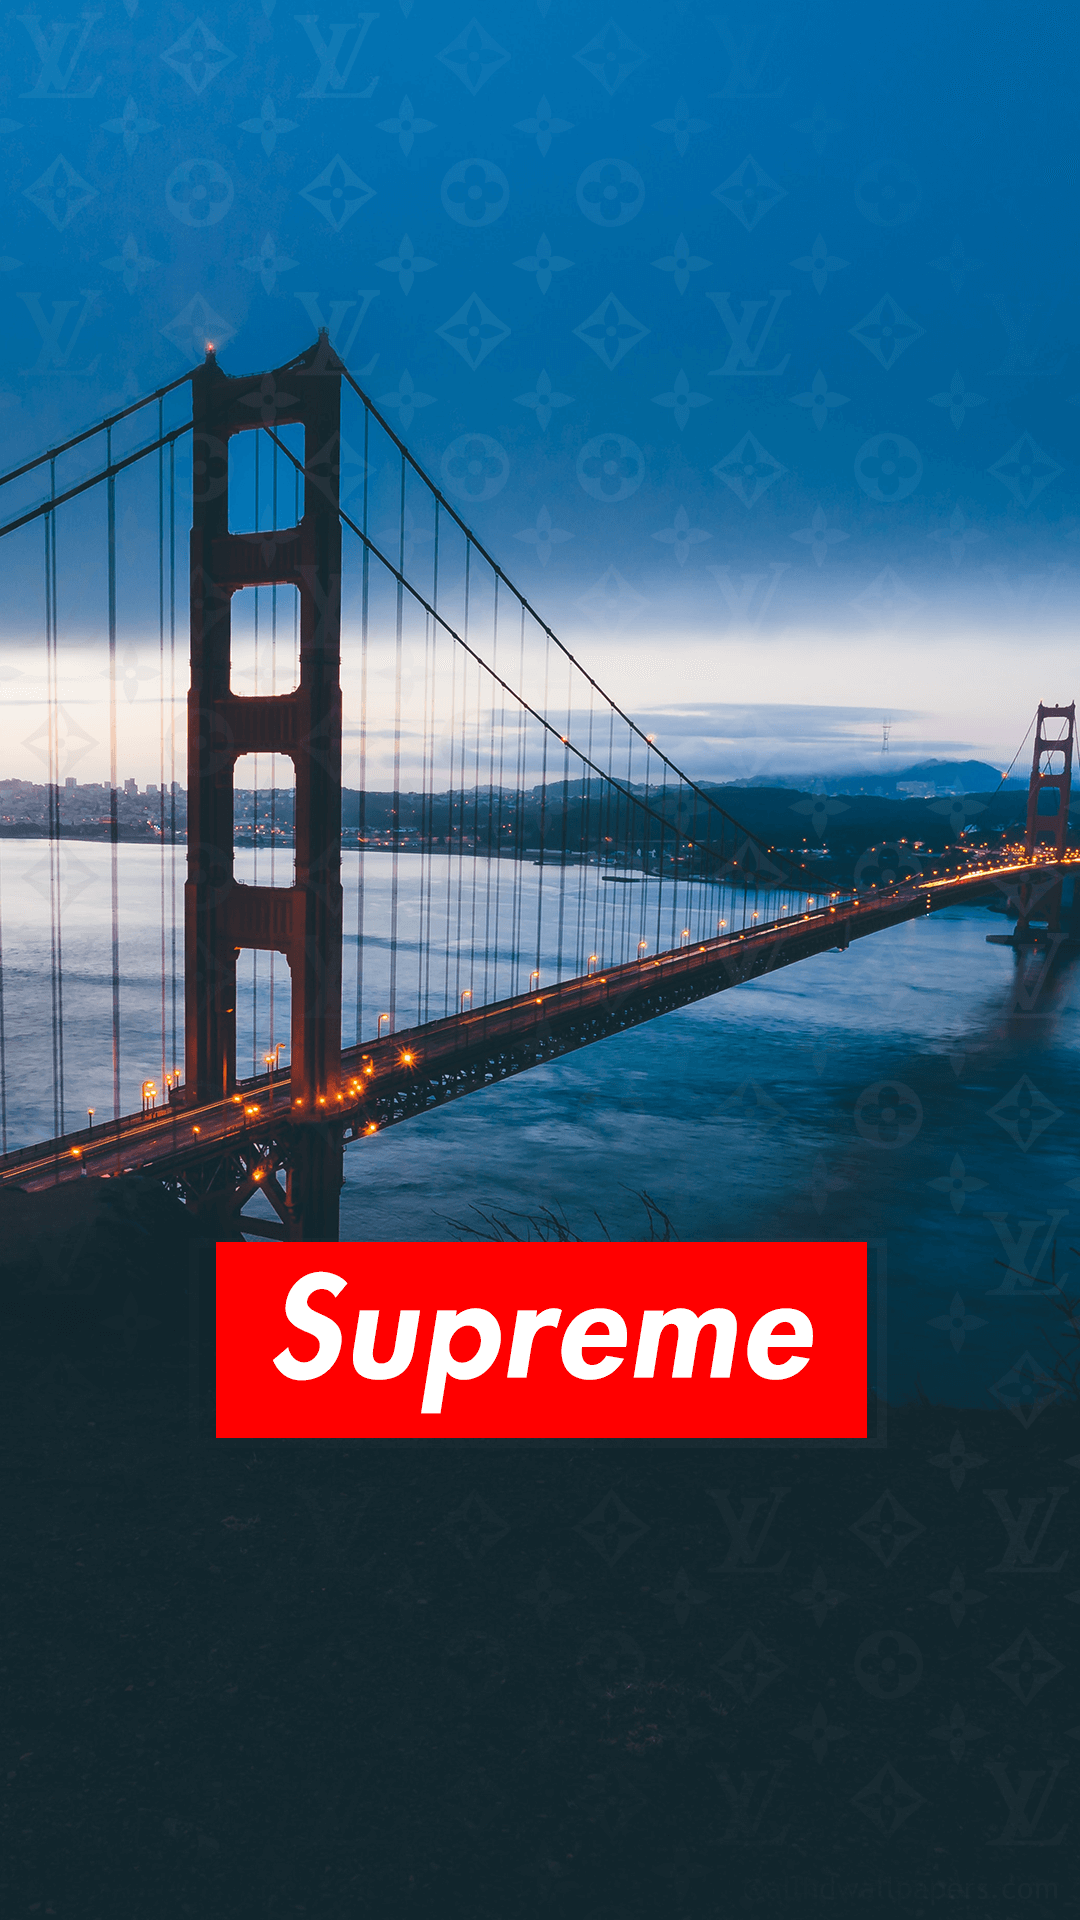 70 Supreme Wallpapers In 4k Allhdwallpapers Supreme Wallpaper Usa Wallpaper Supreme Iphone Wallpaper